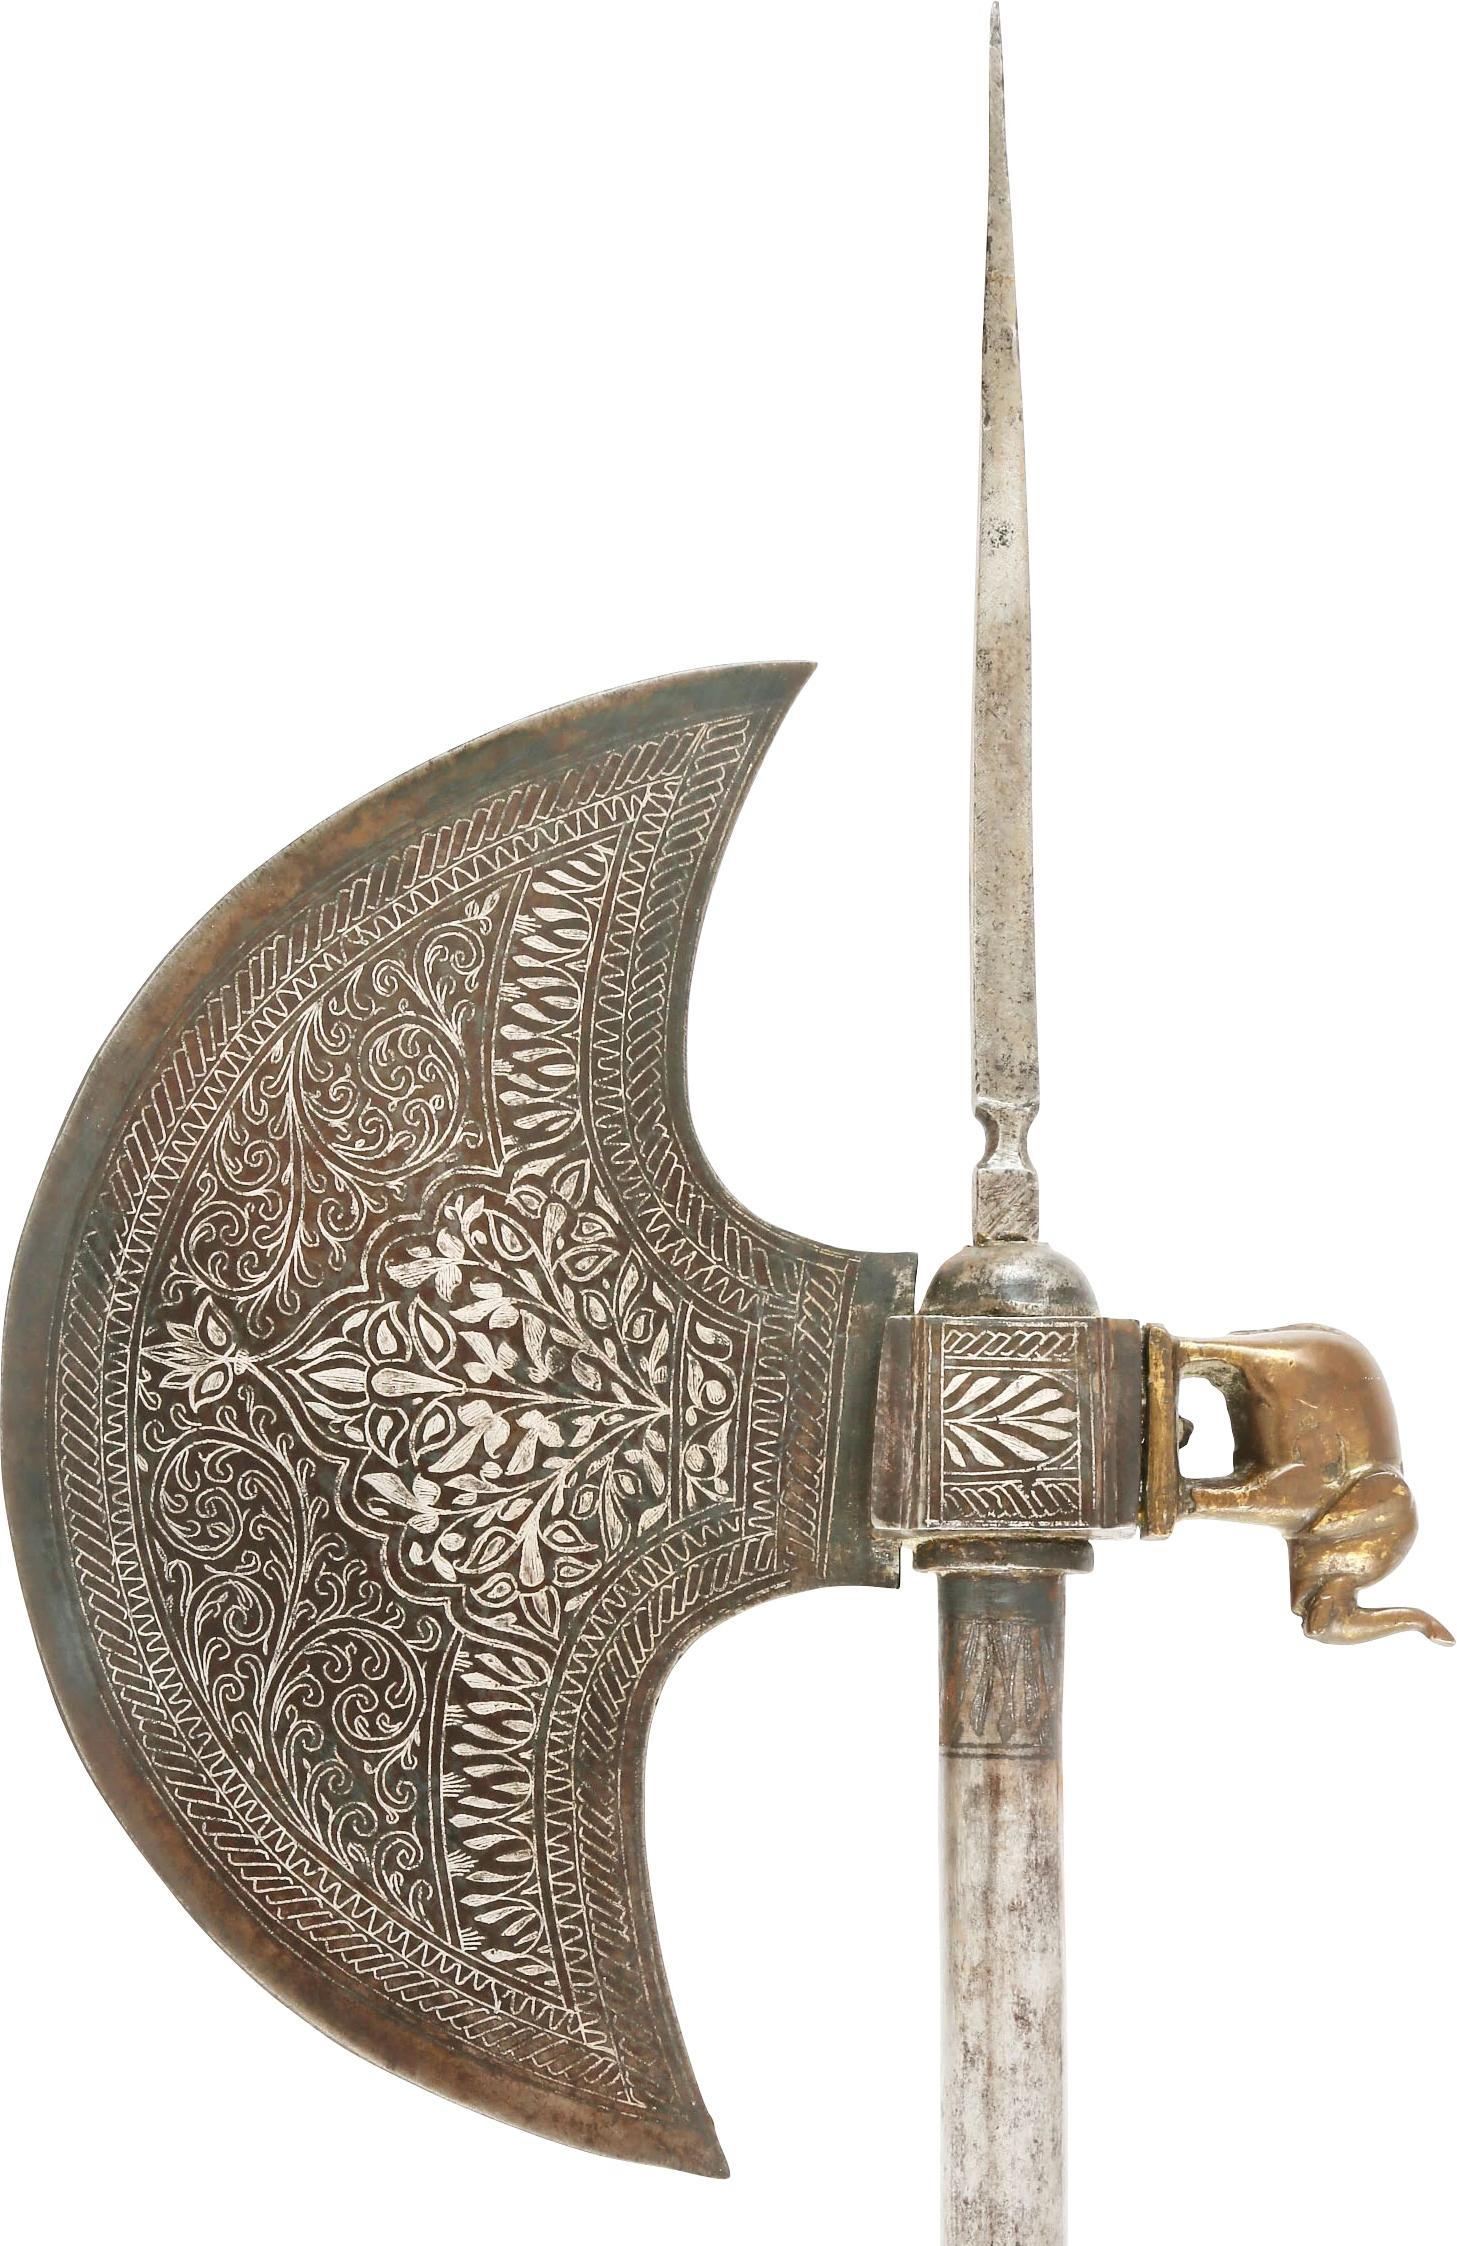 INDOPERSIAN BATTLE AXE. - Fagan Arms